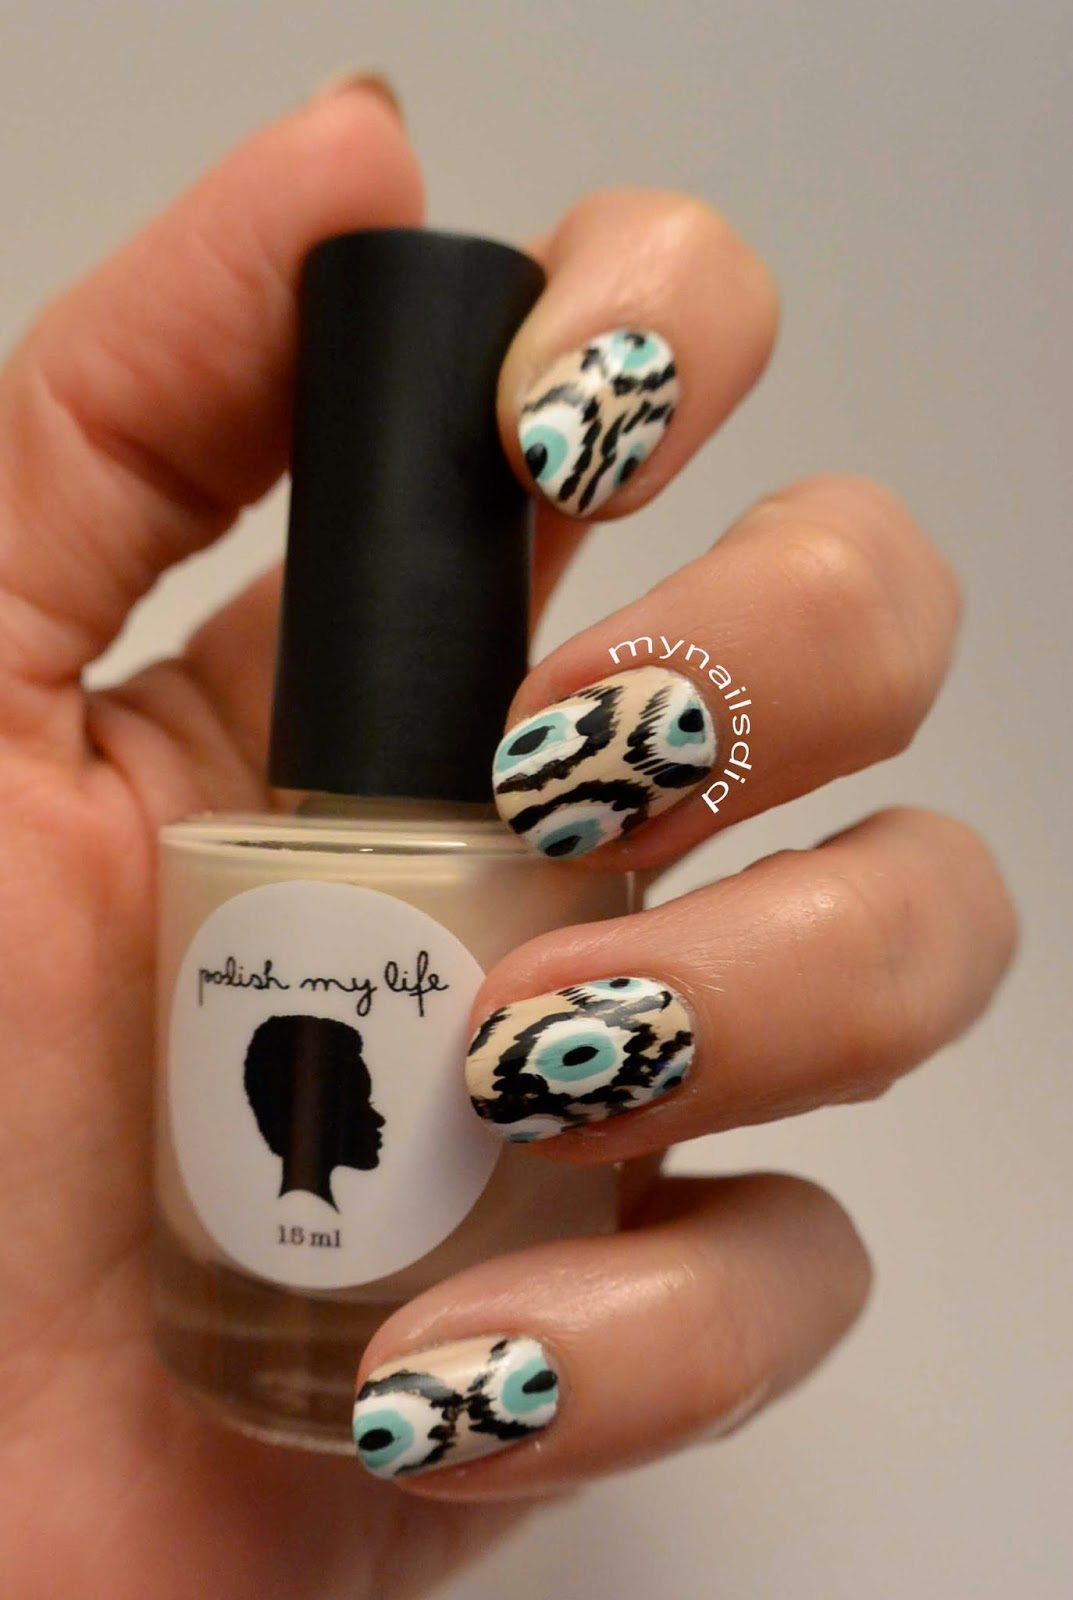 My Nails Did: Ikat Print Mani